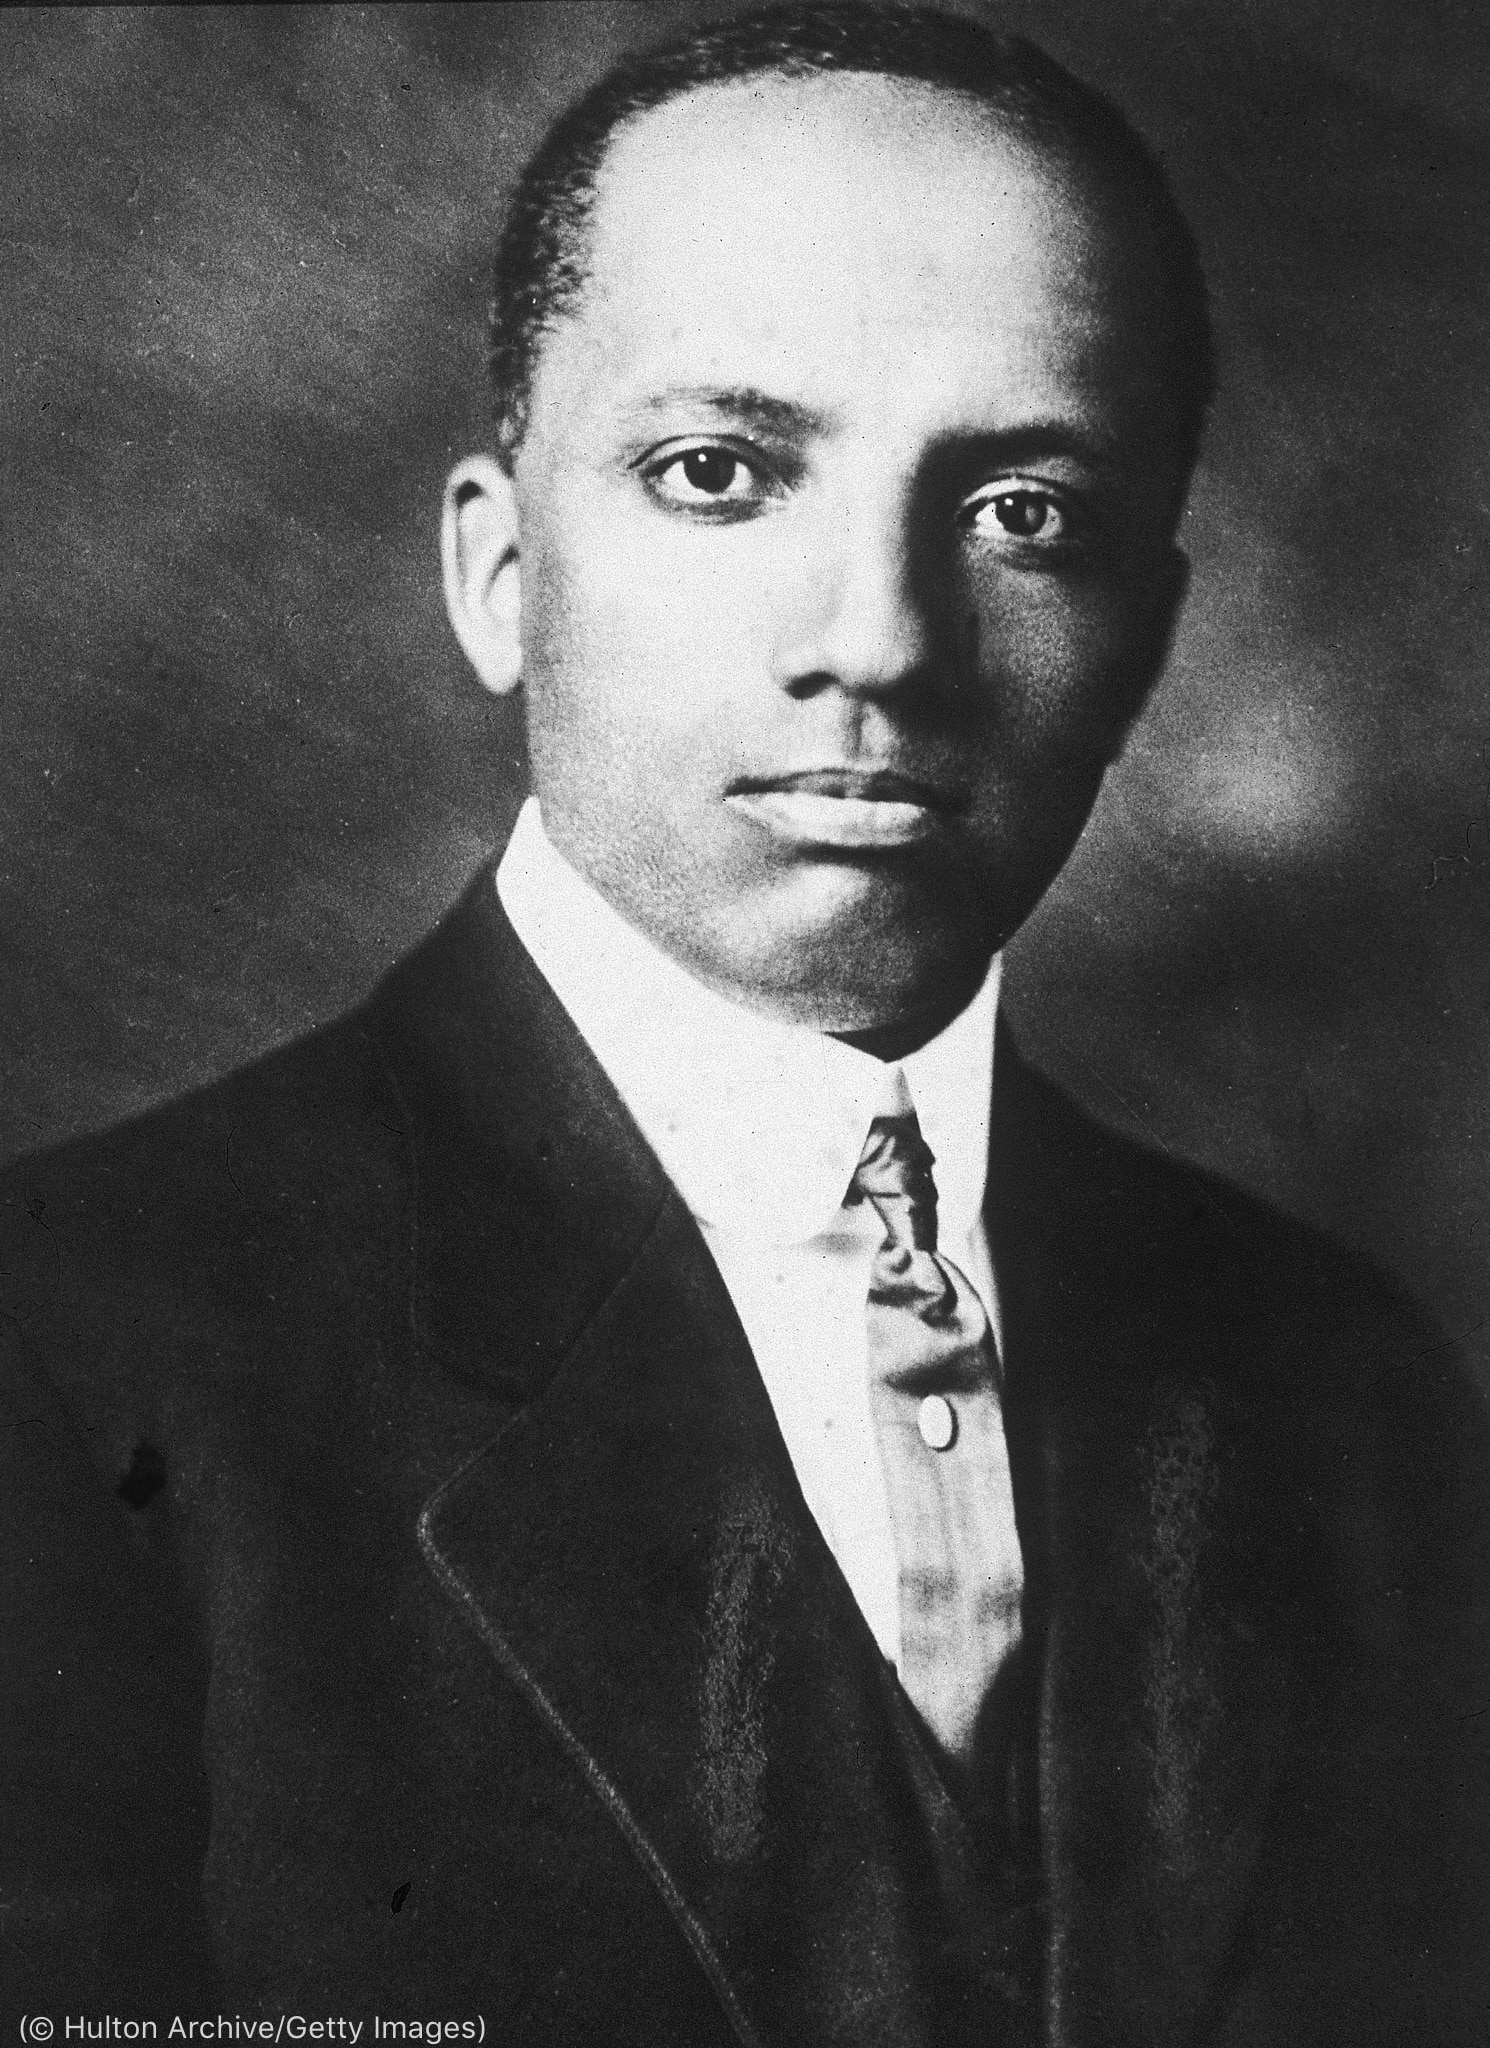 Portrait photo of Carter G. Woodson (© Hulton Archive/Getty Images)